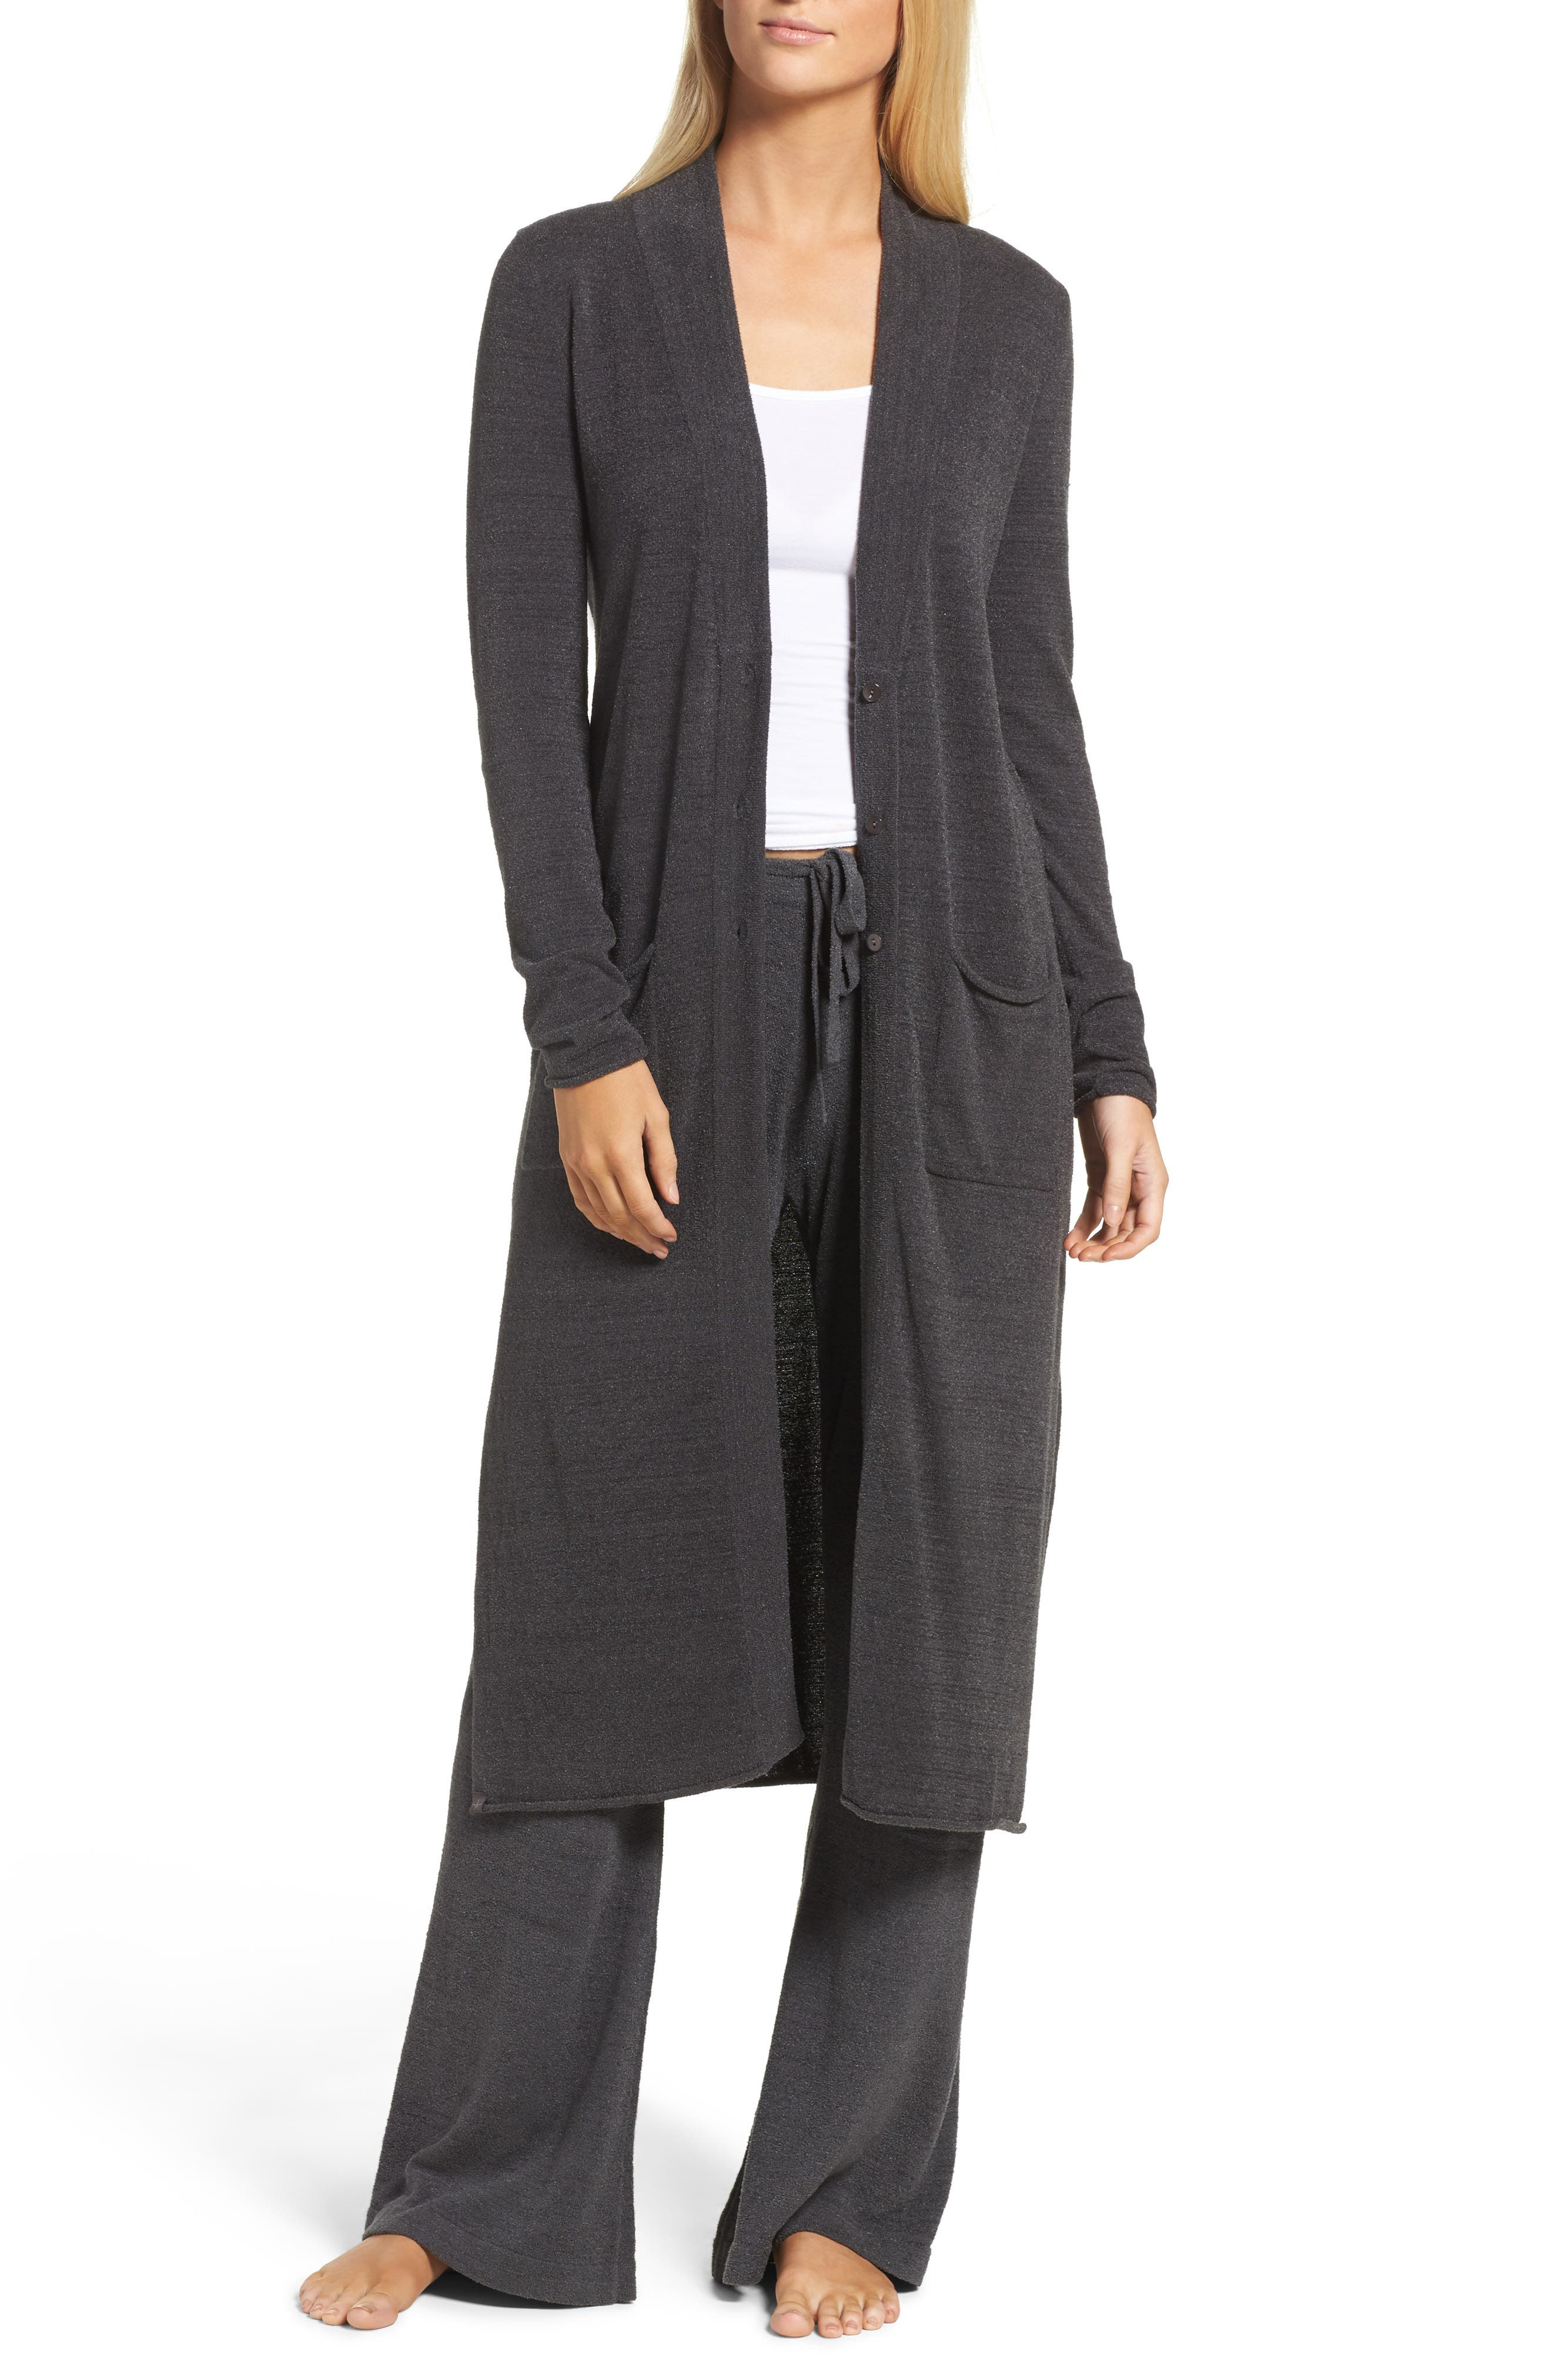 Barefoot Dreams Cozychic Ultra Lite<sup>®</sup> Duster,                             Main thumbnail 1, color,                             Carbon